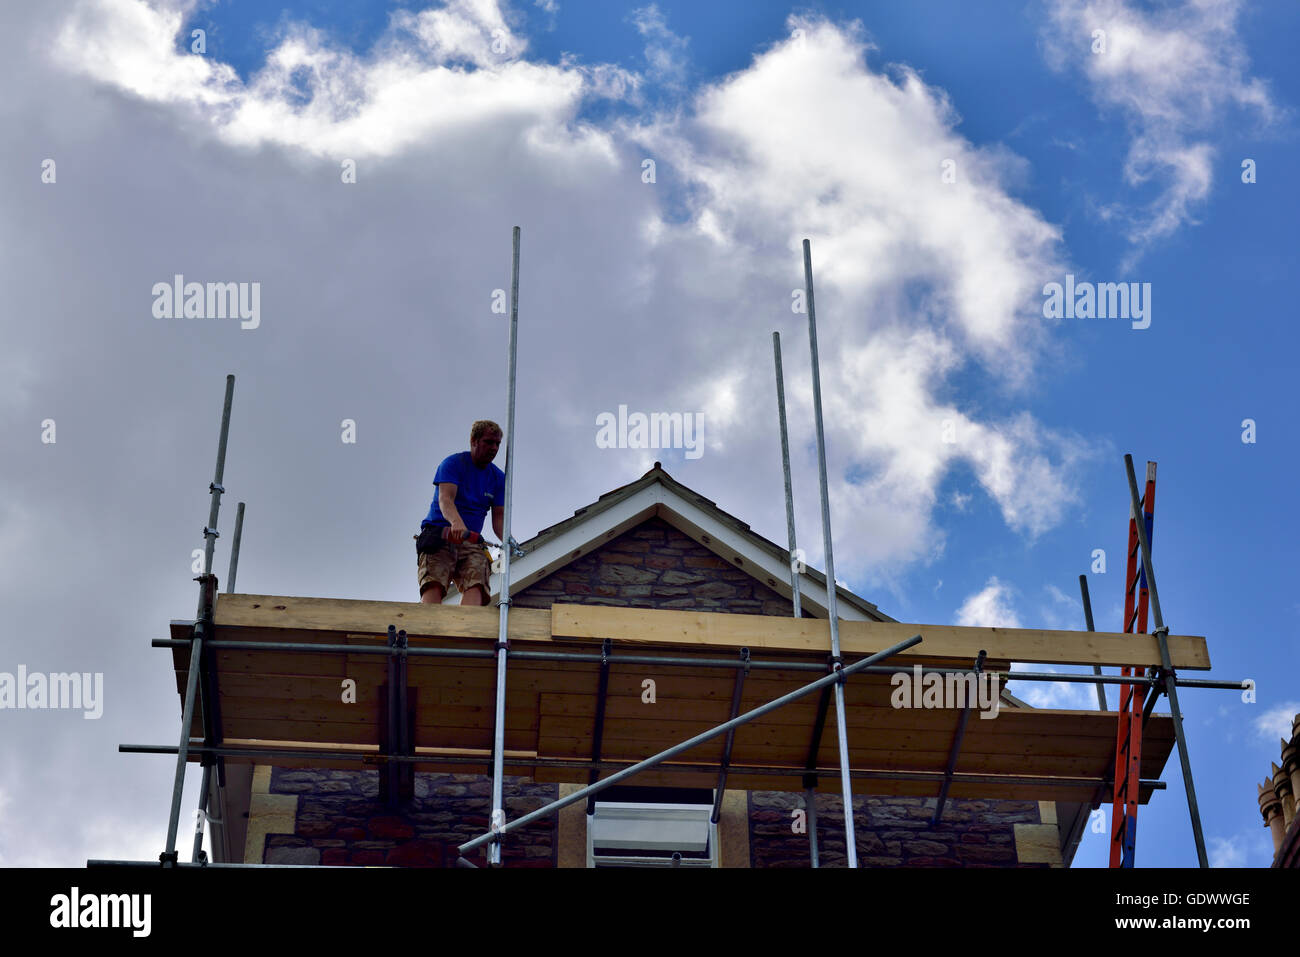 Roof gable apex with scaffolding and scaffolder in silhouette, UK - Stock Image